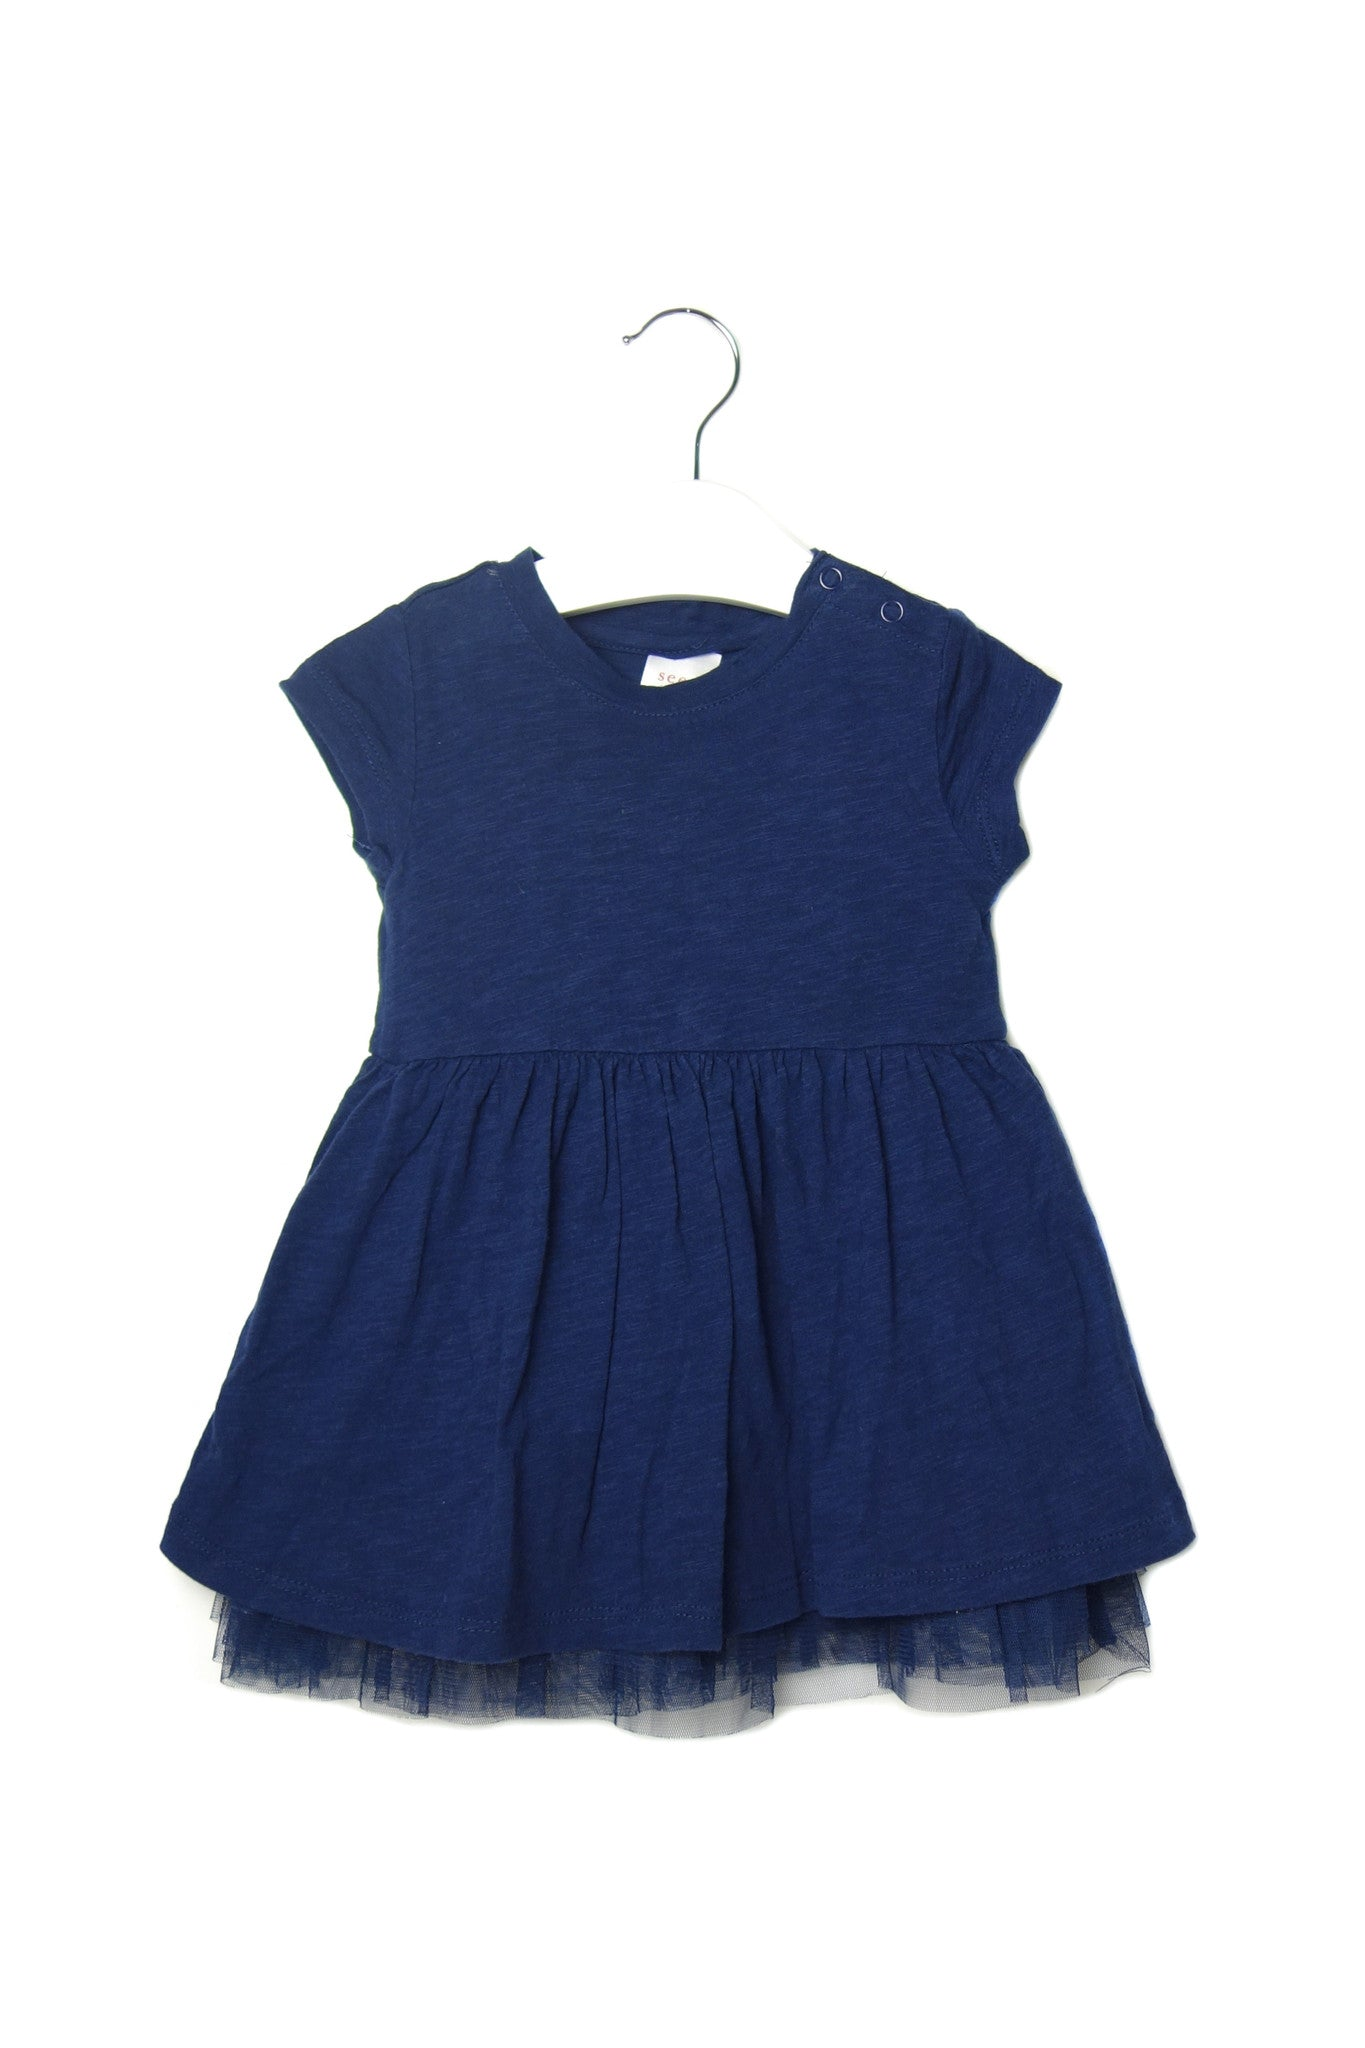 10001453 Seed Baby~Dress 6-12M at Retykle